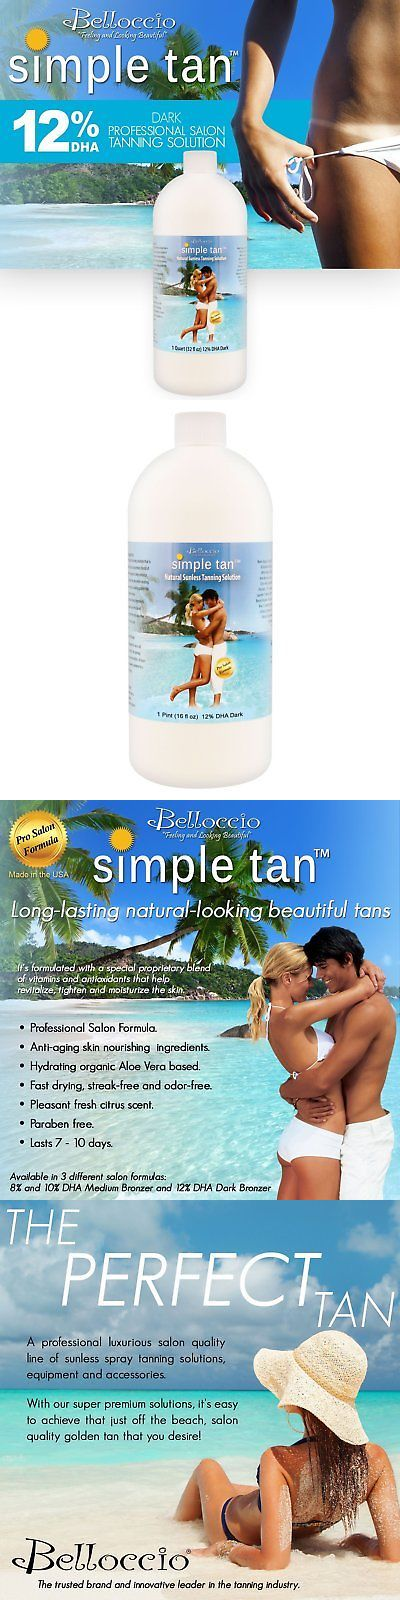 Sunless Tanning Products: Quart Belloccio Simple Tan 12% Dha Dark Sunless Airbrush Spray Tanning Solution -> BUY IT NOW ONLY: $31.42 on eBay!